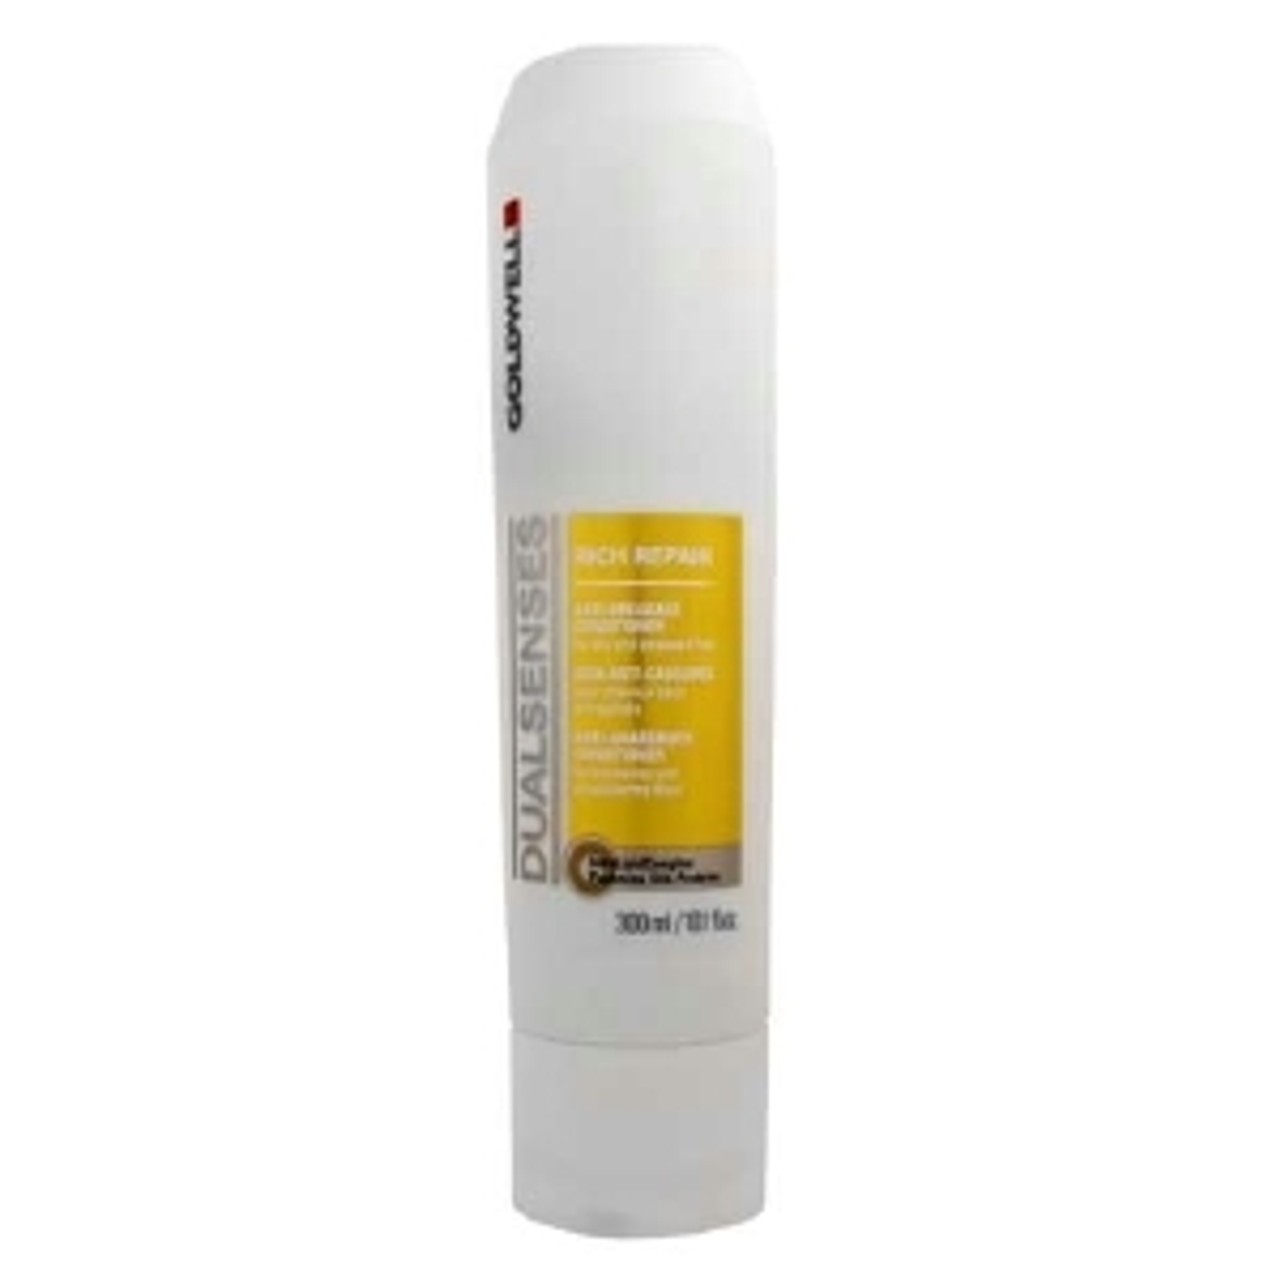 Goldwell Dualsenses Rich Repair Anti-Breakage Conditioner 300ml